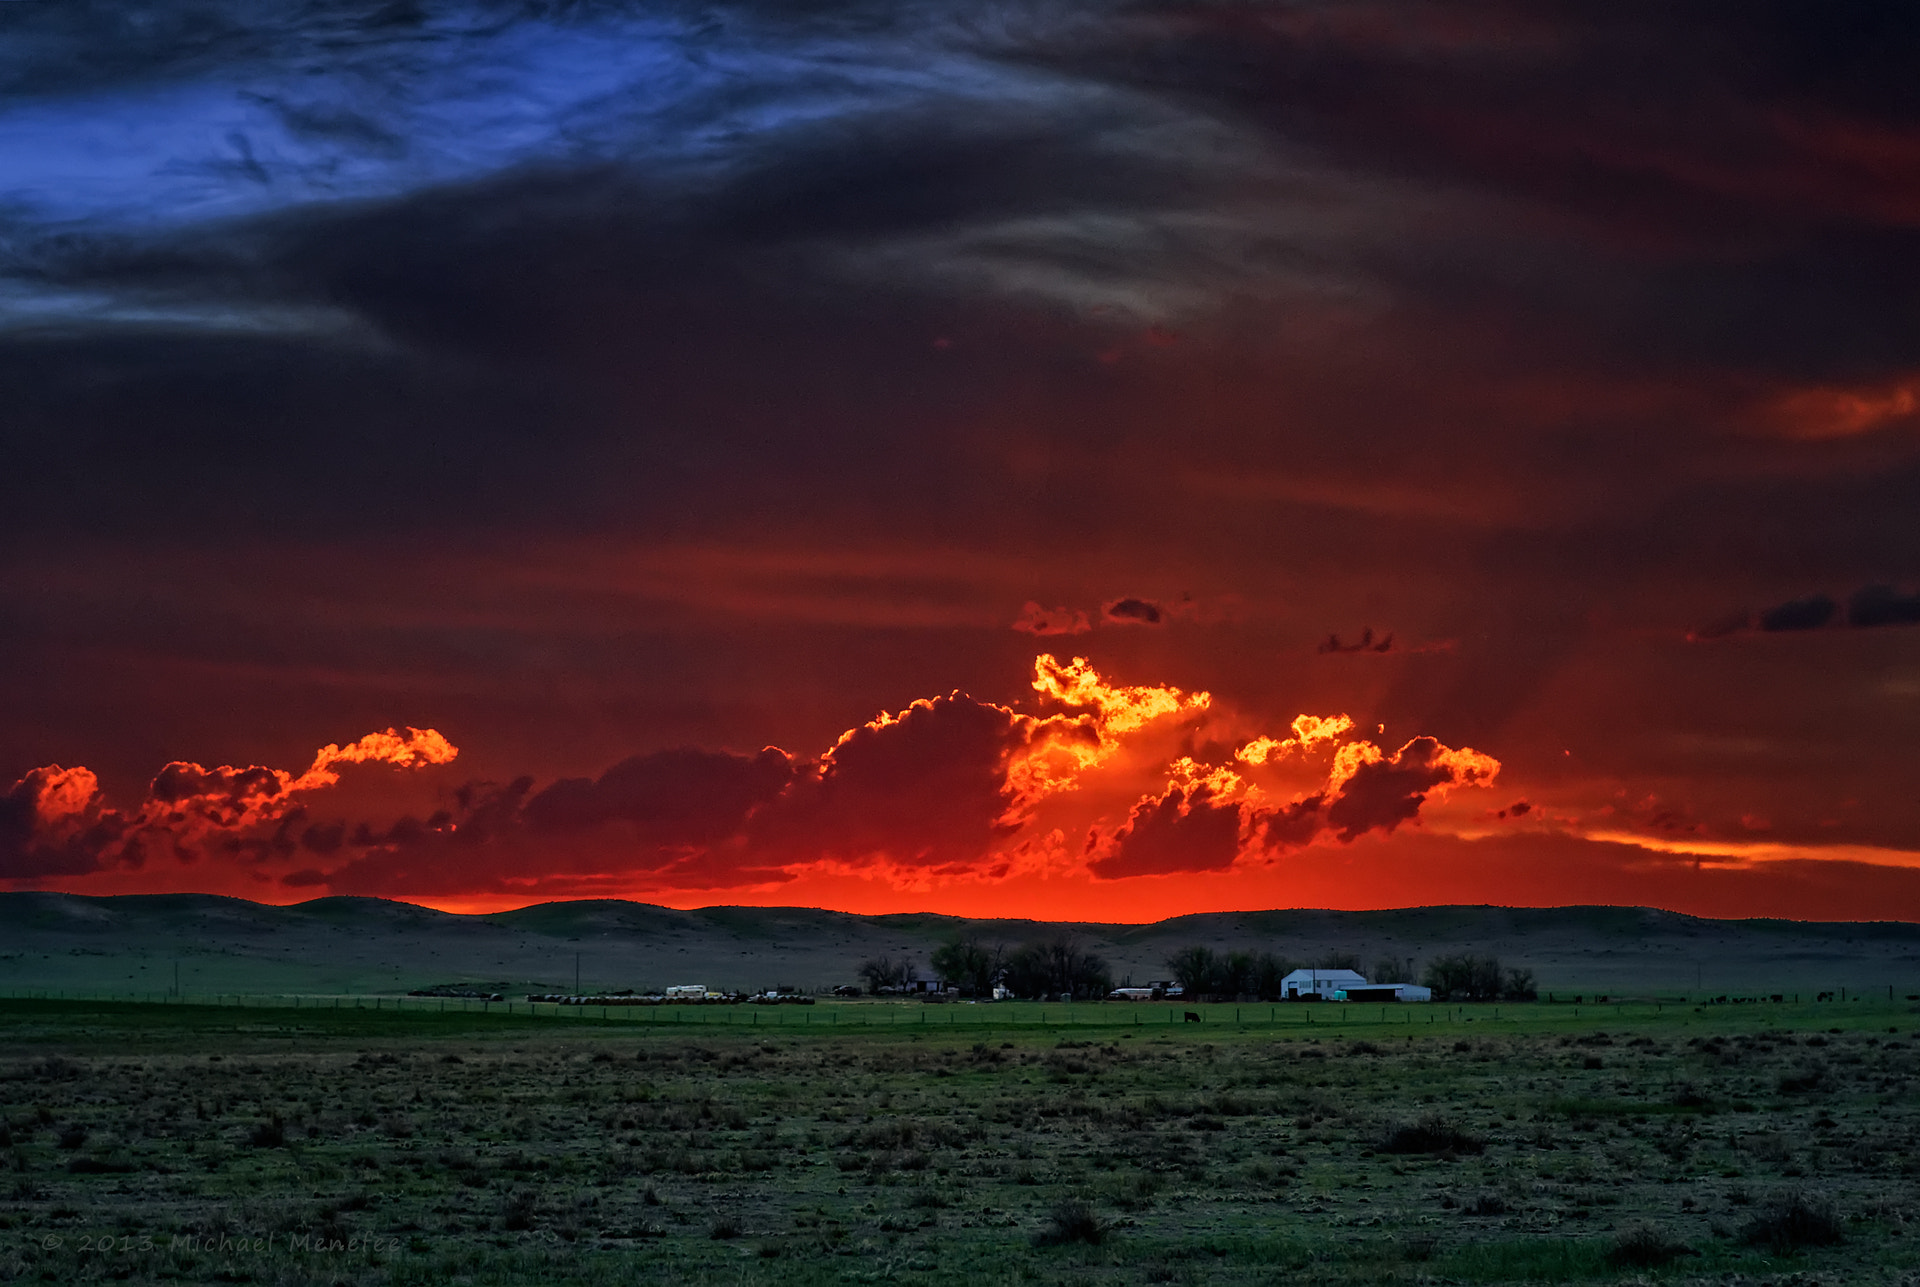 Photograph Spring Sunset on a Pawnee Ranch by Michael Menefee on 500px